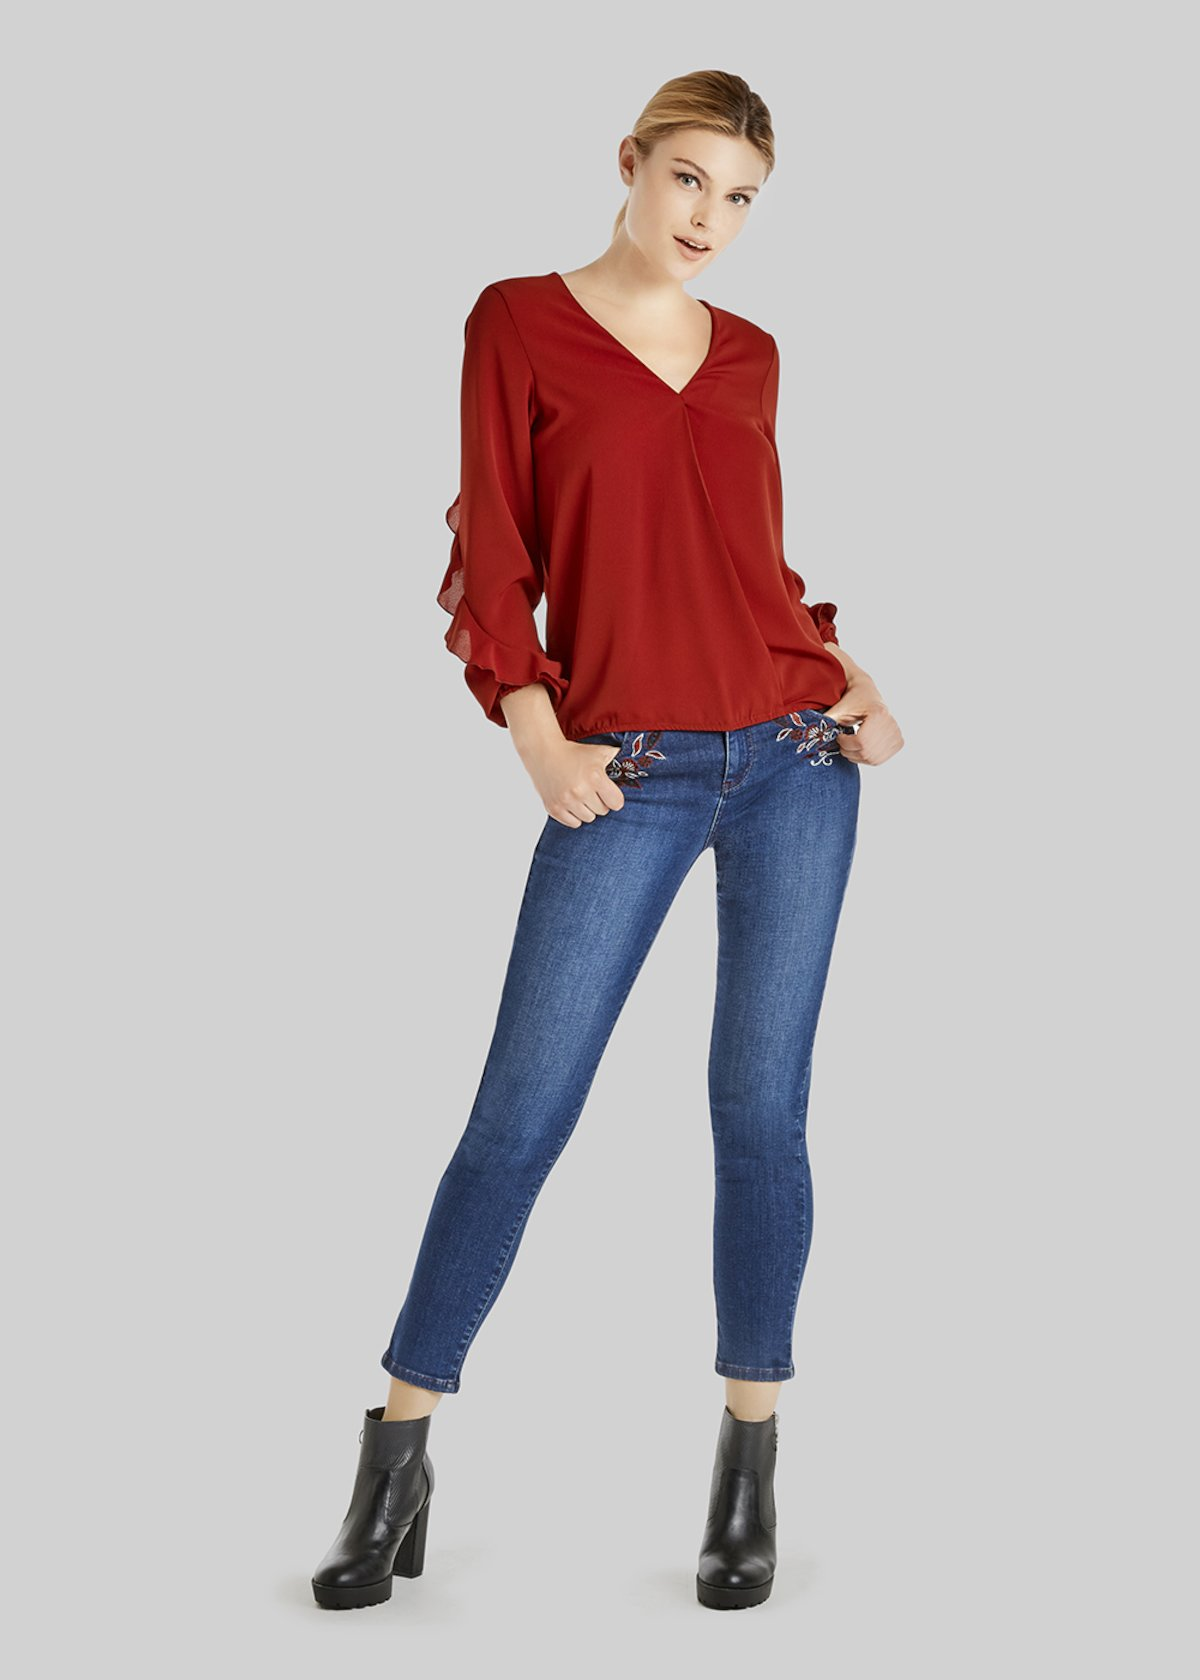 Clarissa blouse with ruffles on the sleeves - Bordeaux - Woman - Category image